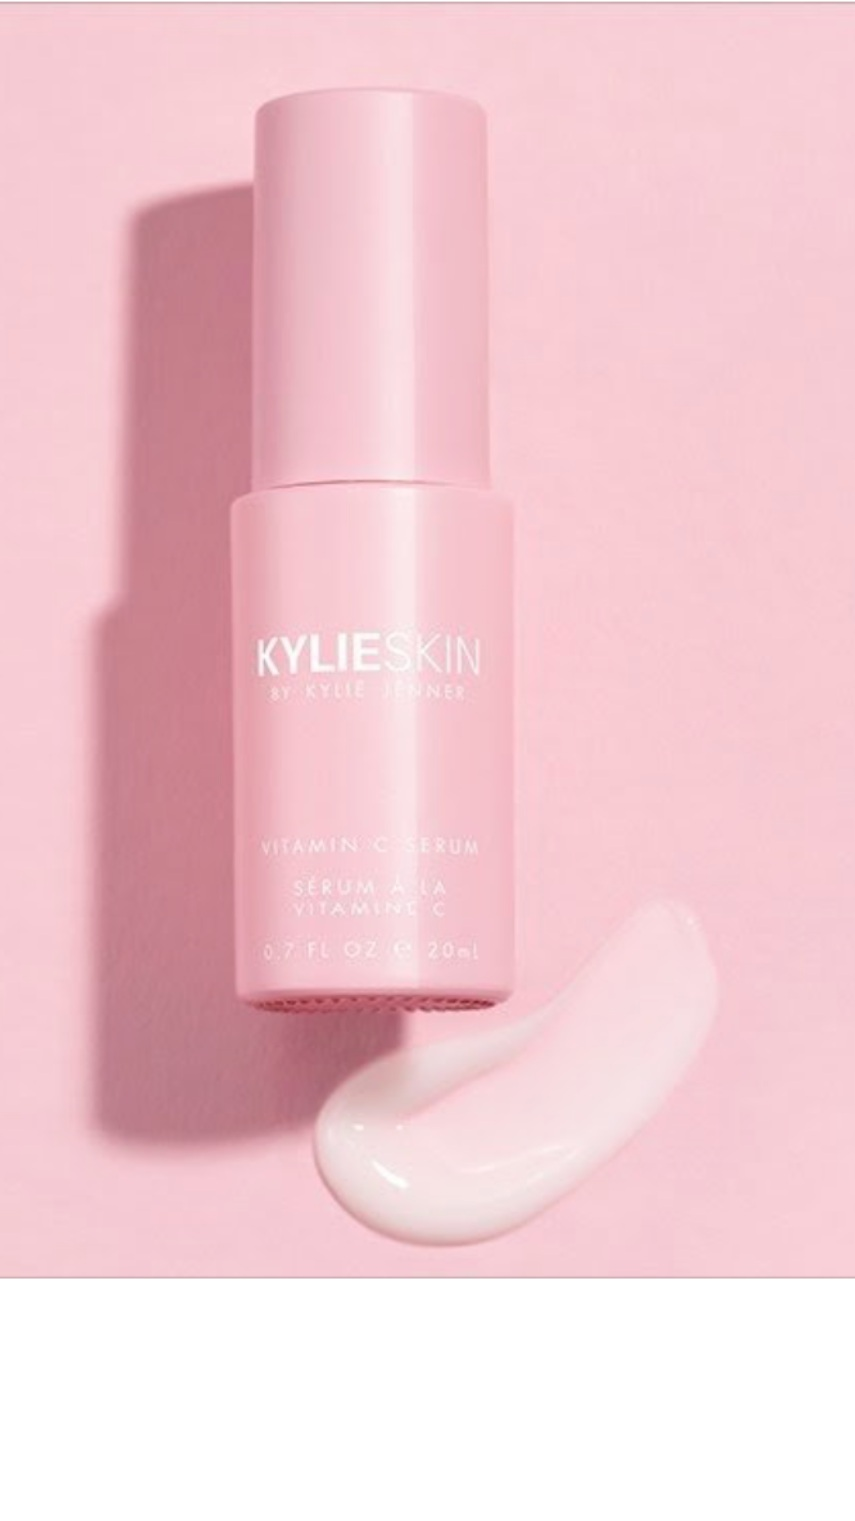 - Another Kylie product! I am really liking this serum! It's a great consistency and my skin feels great after I put in on.Find it here.